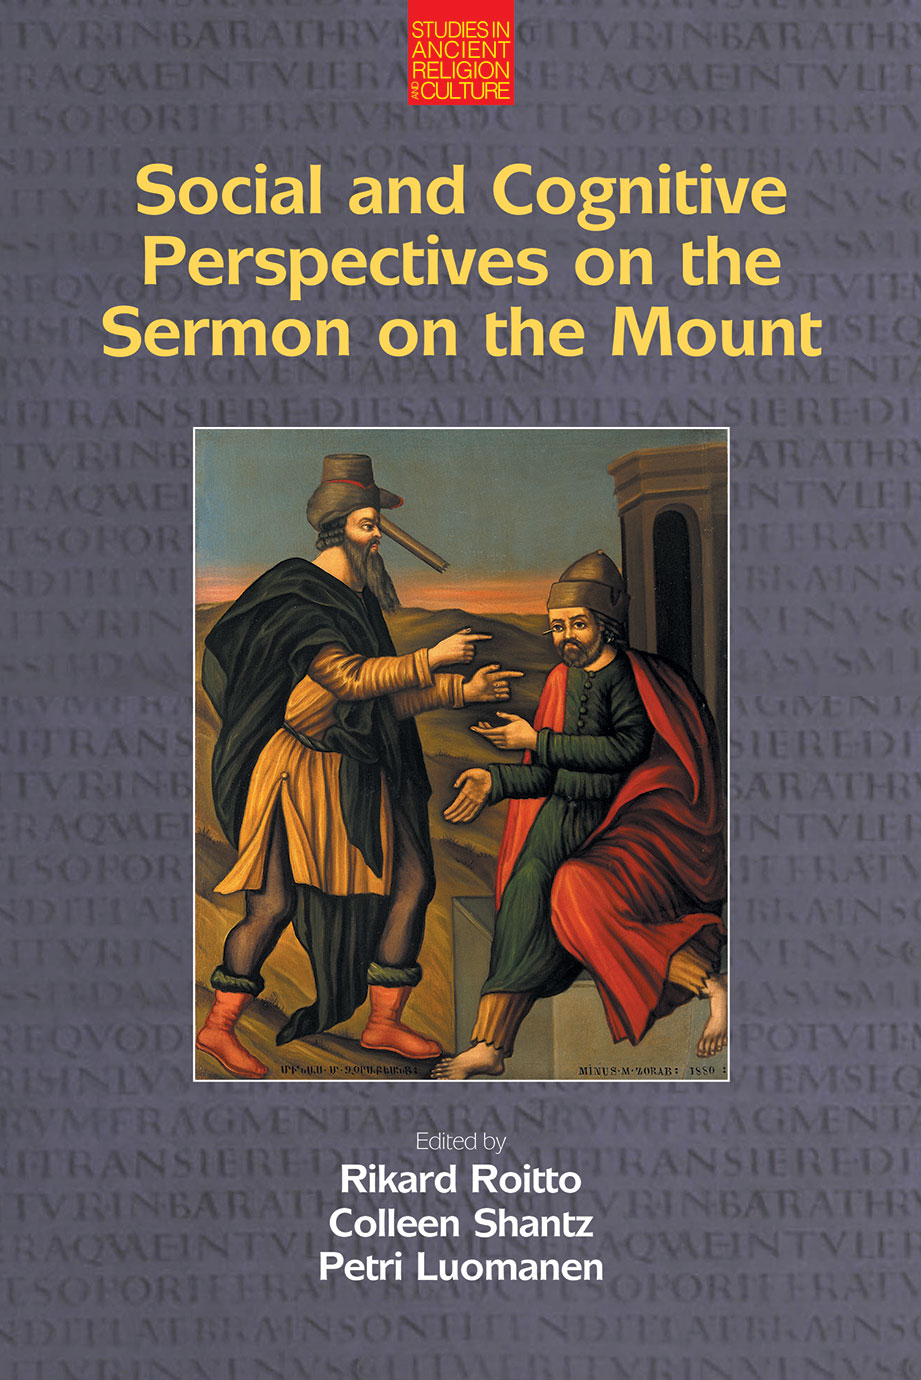 Social and Cognitive Perspectives on the Sermon on the Mount - Rikard Roitto